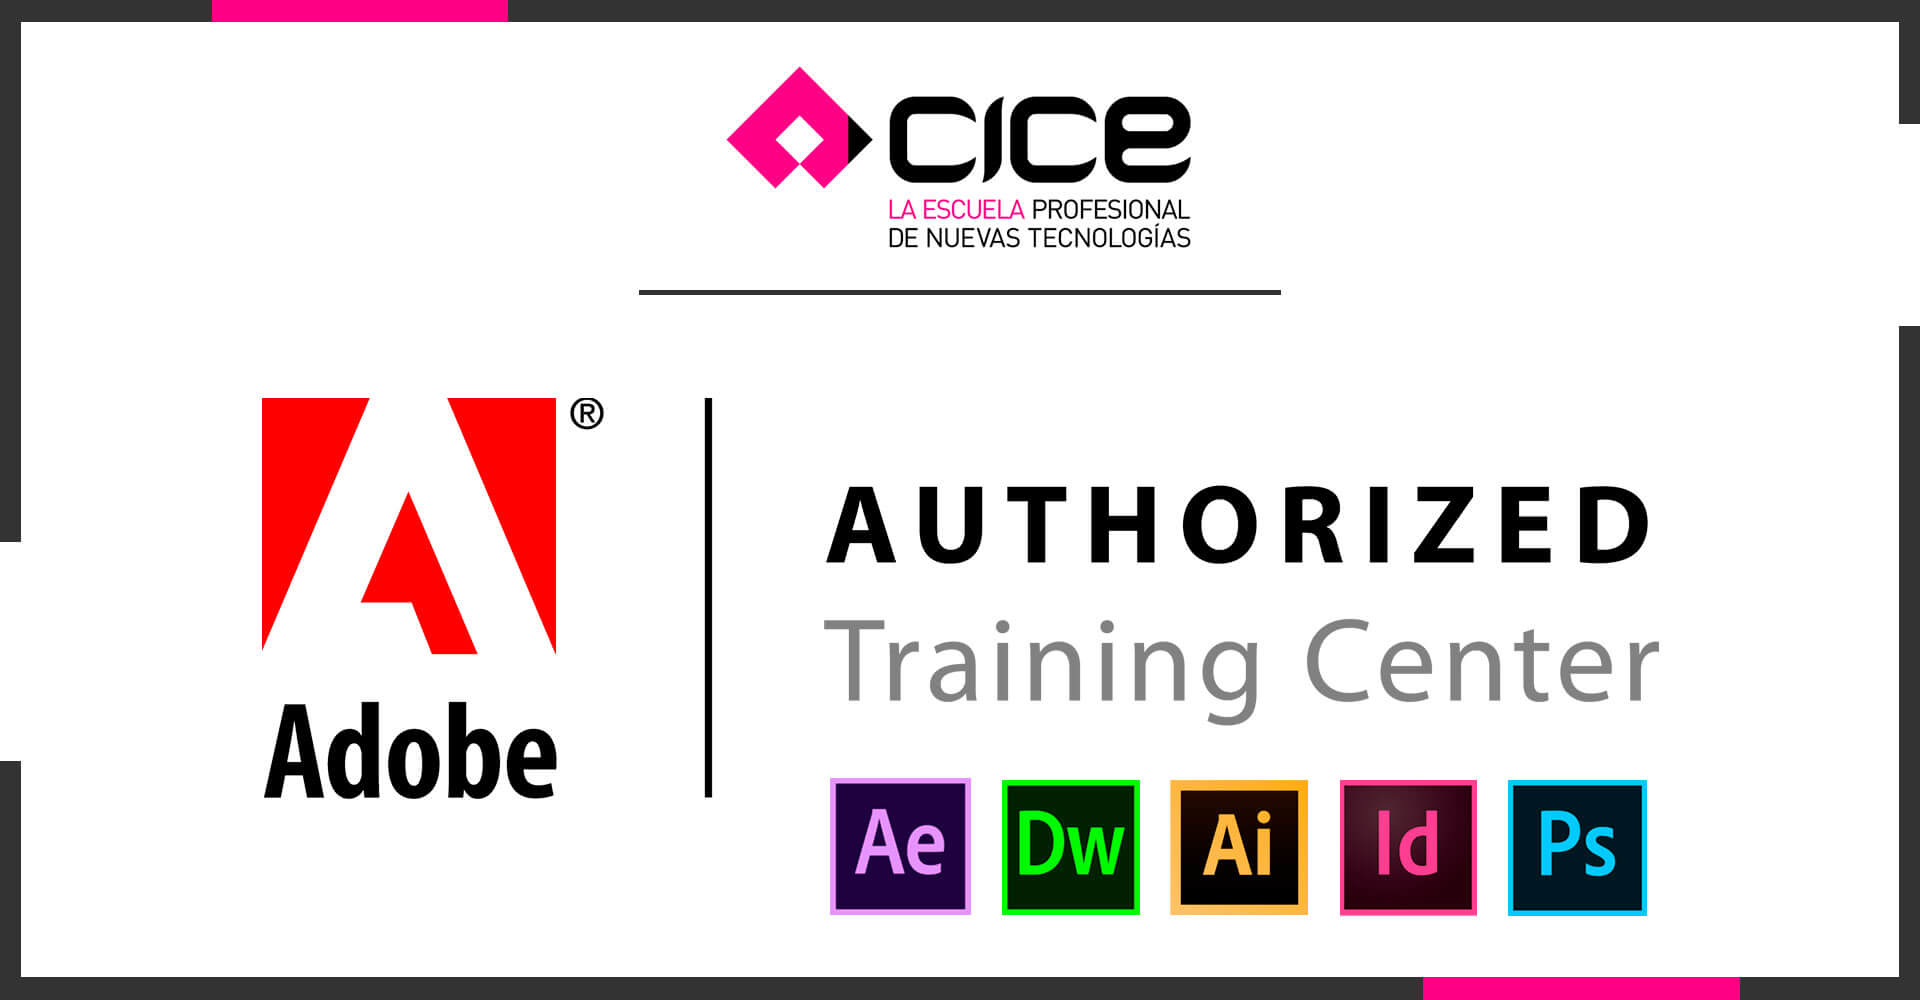 Un año más, la Escuela CICE renueva su certificado como Adobe Authorized Training Center